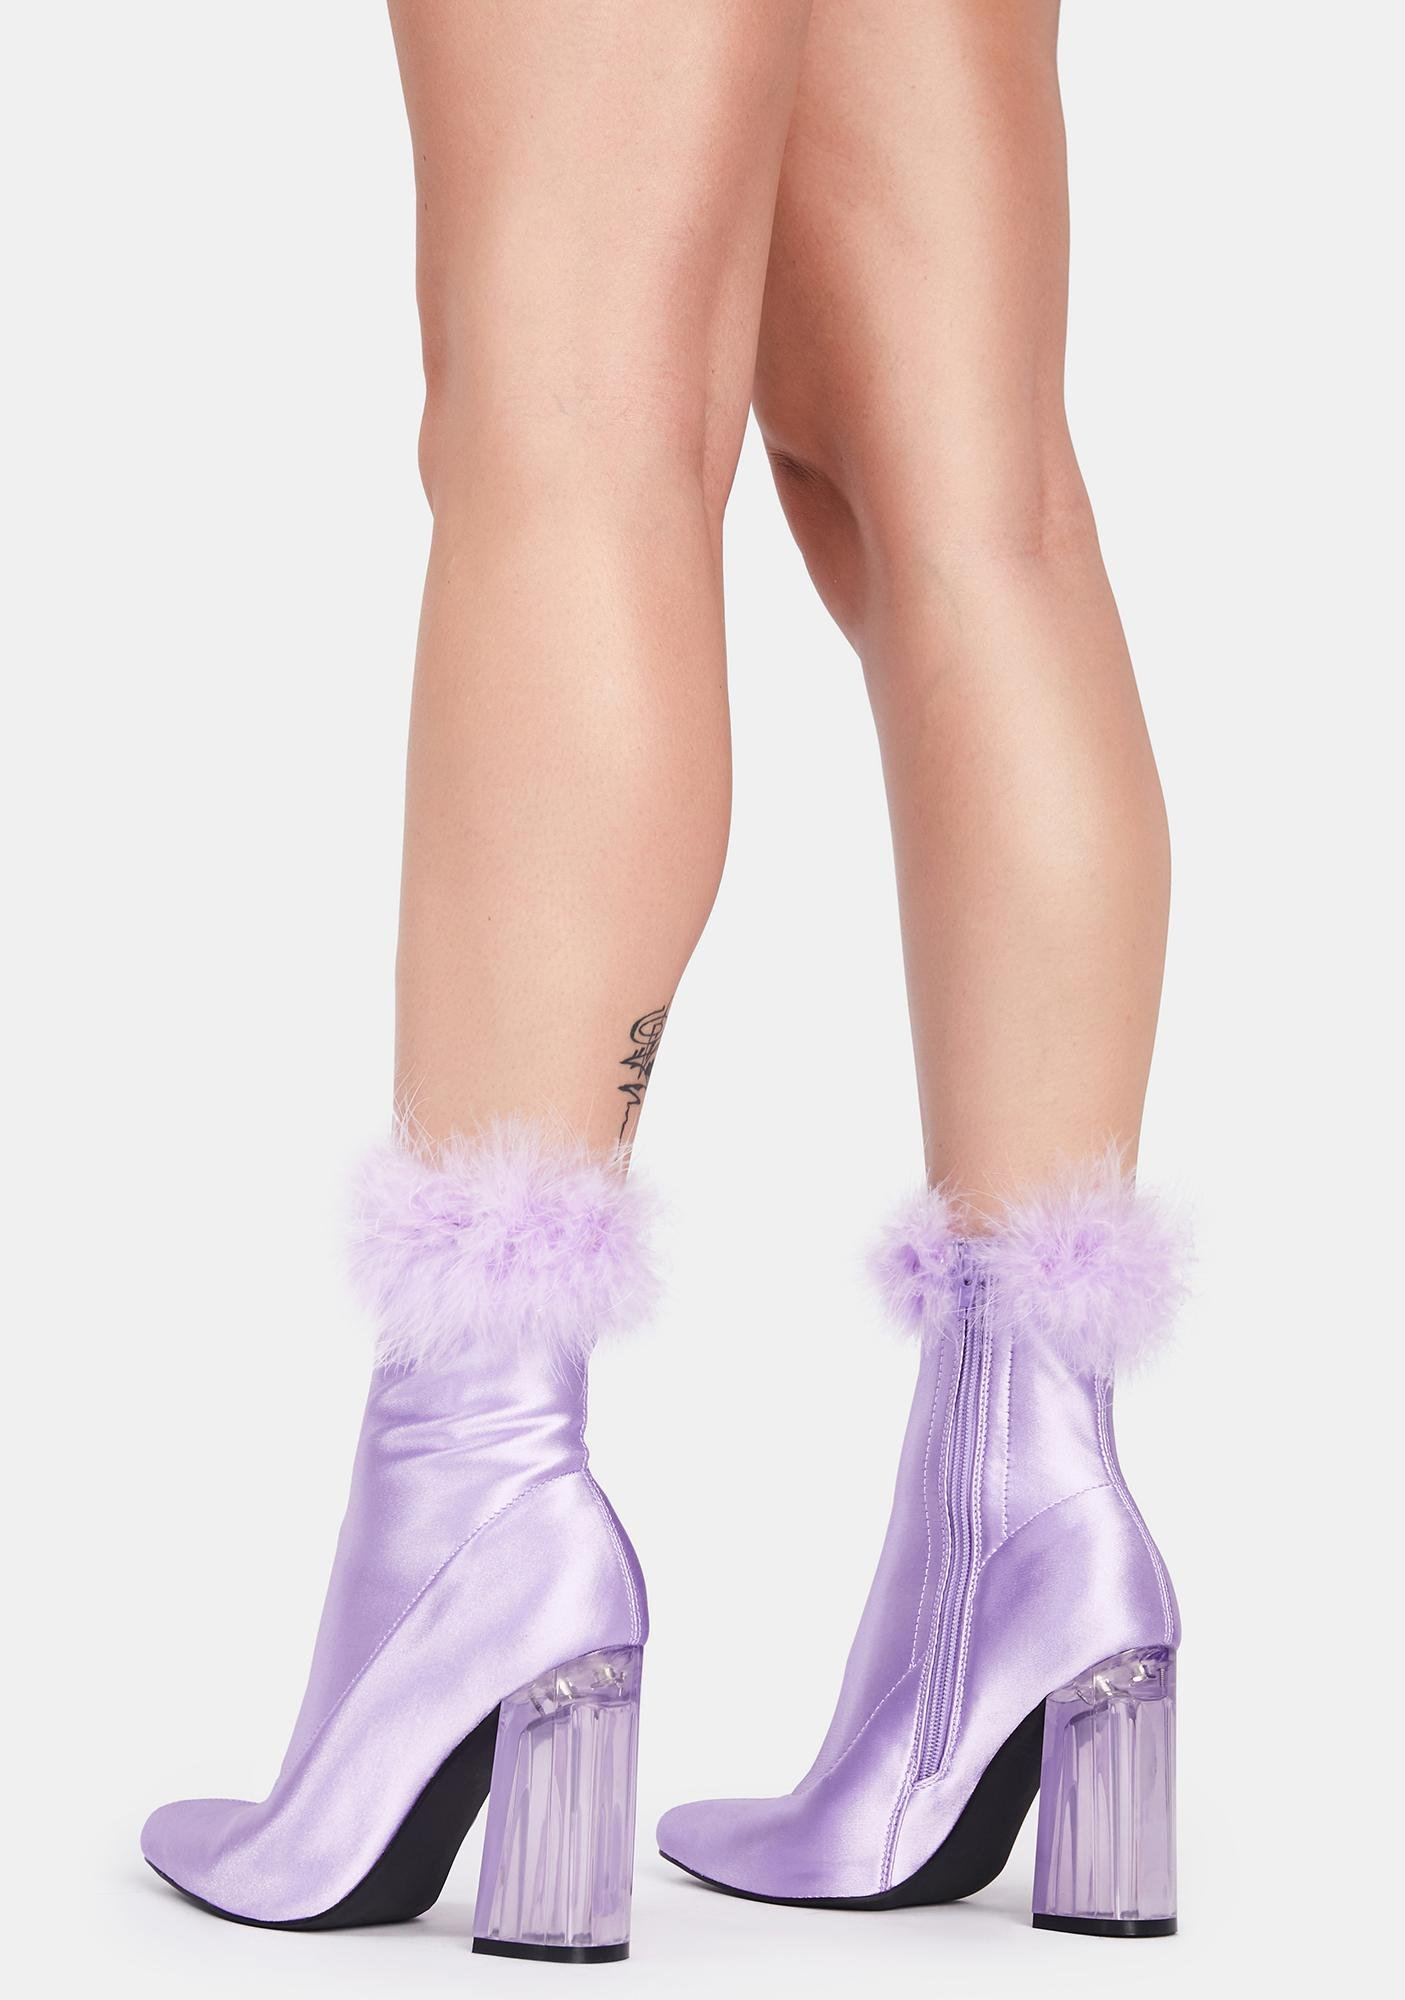 Sugar Thrillz Baby Luv Me Or Hate Me Marabou Boots